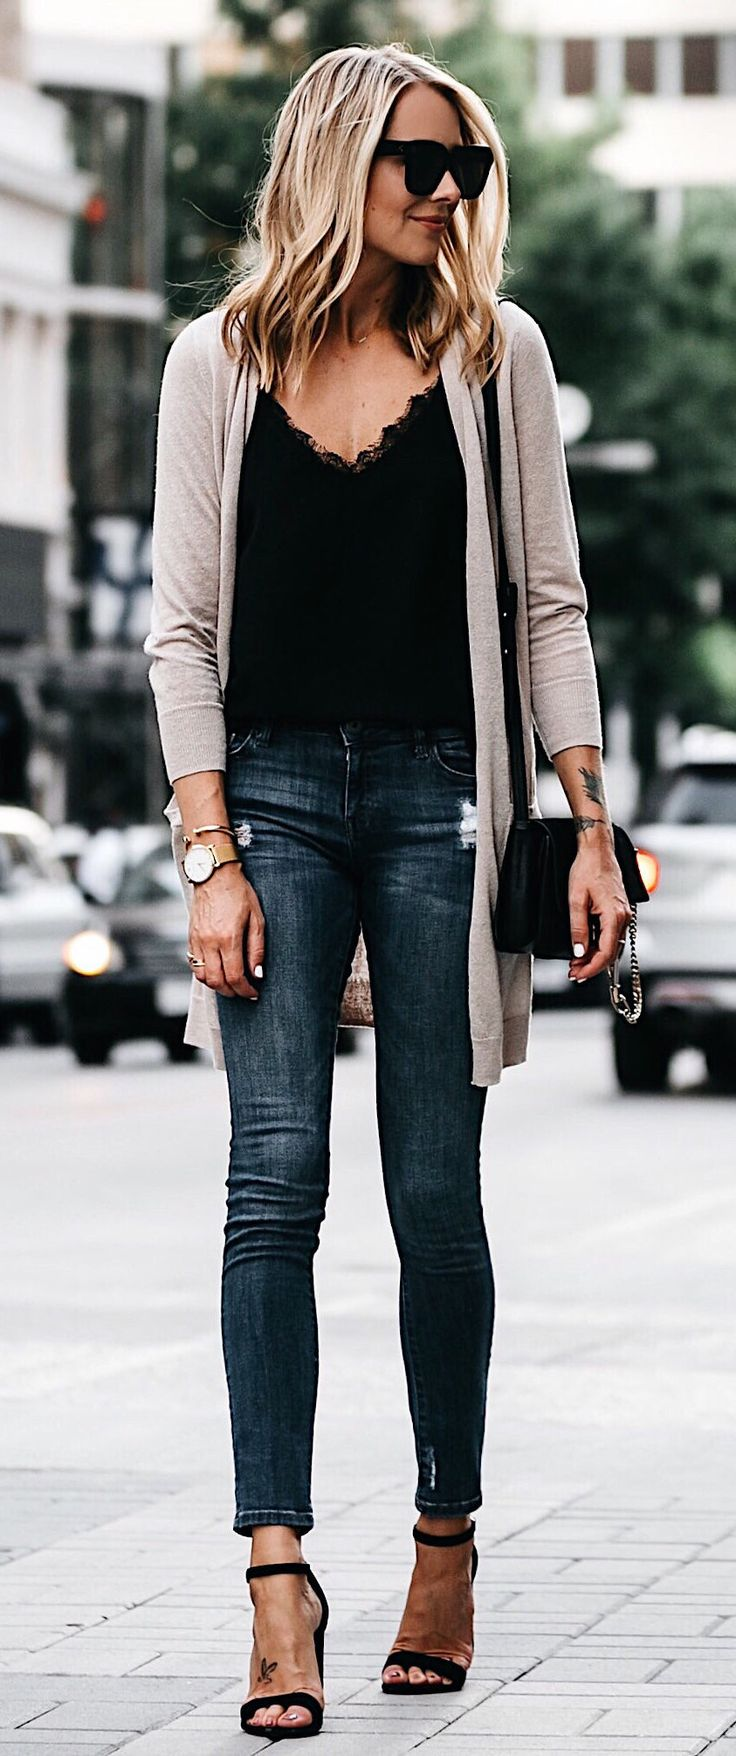 Pinterest: iamtaylorjess | #fall #outfits women's brown cardigan and faded blue skinny jeans #fashion